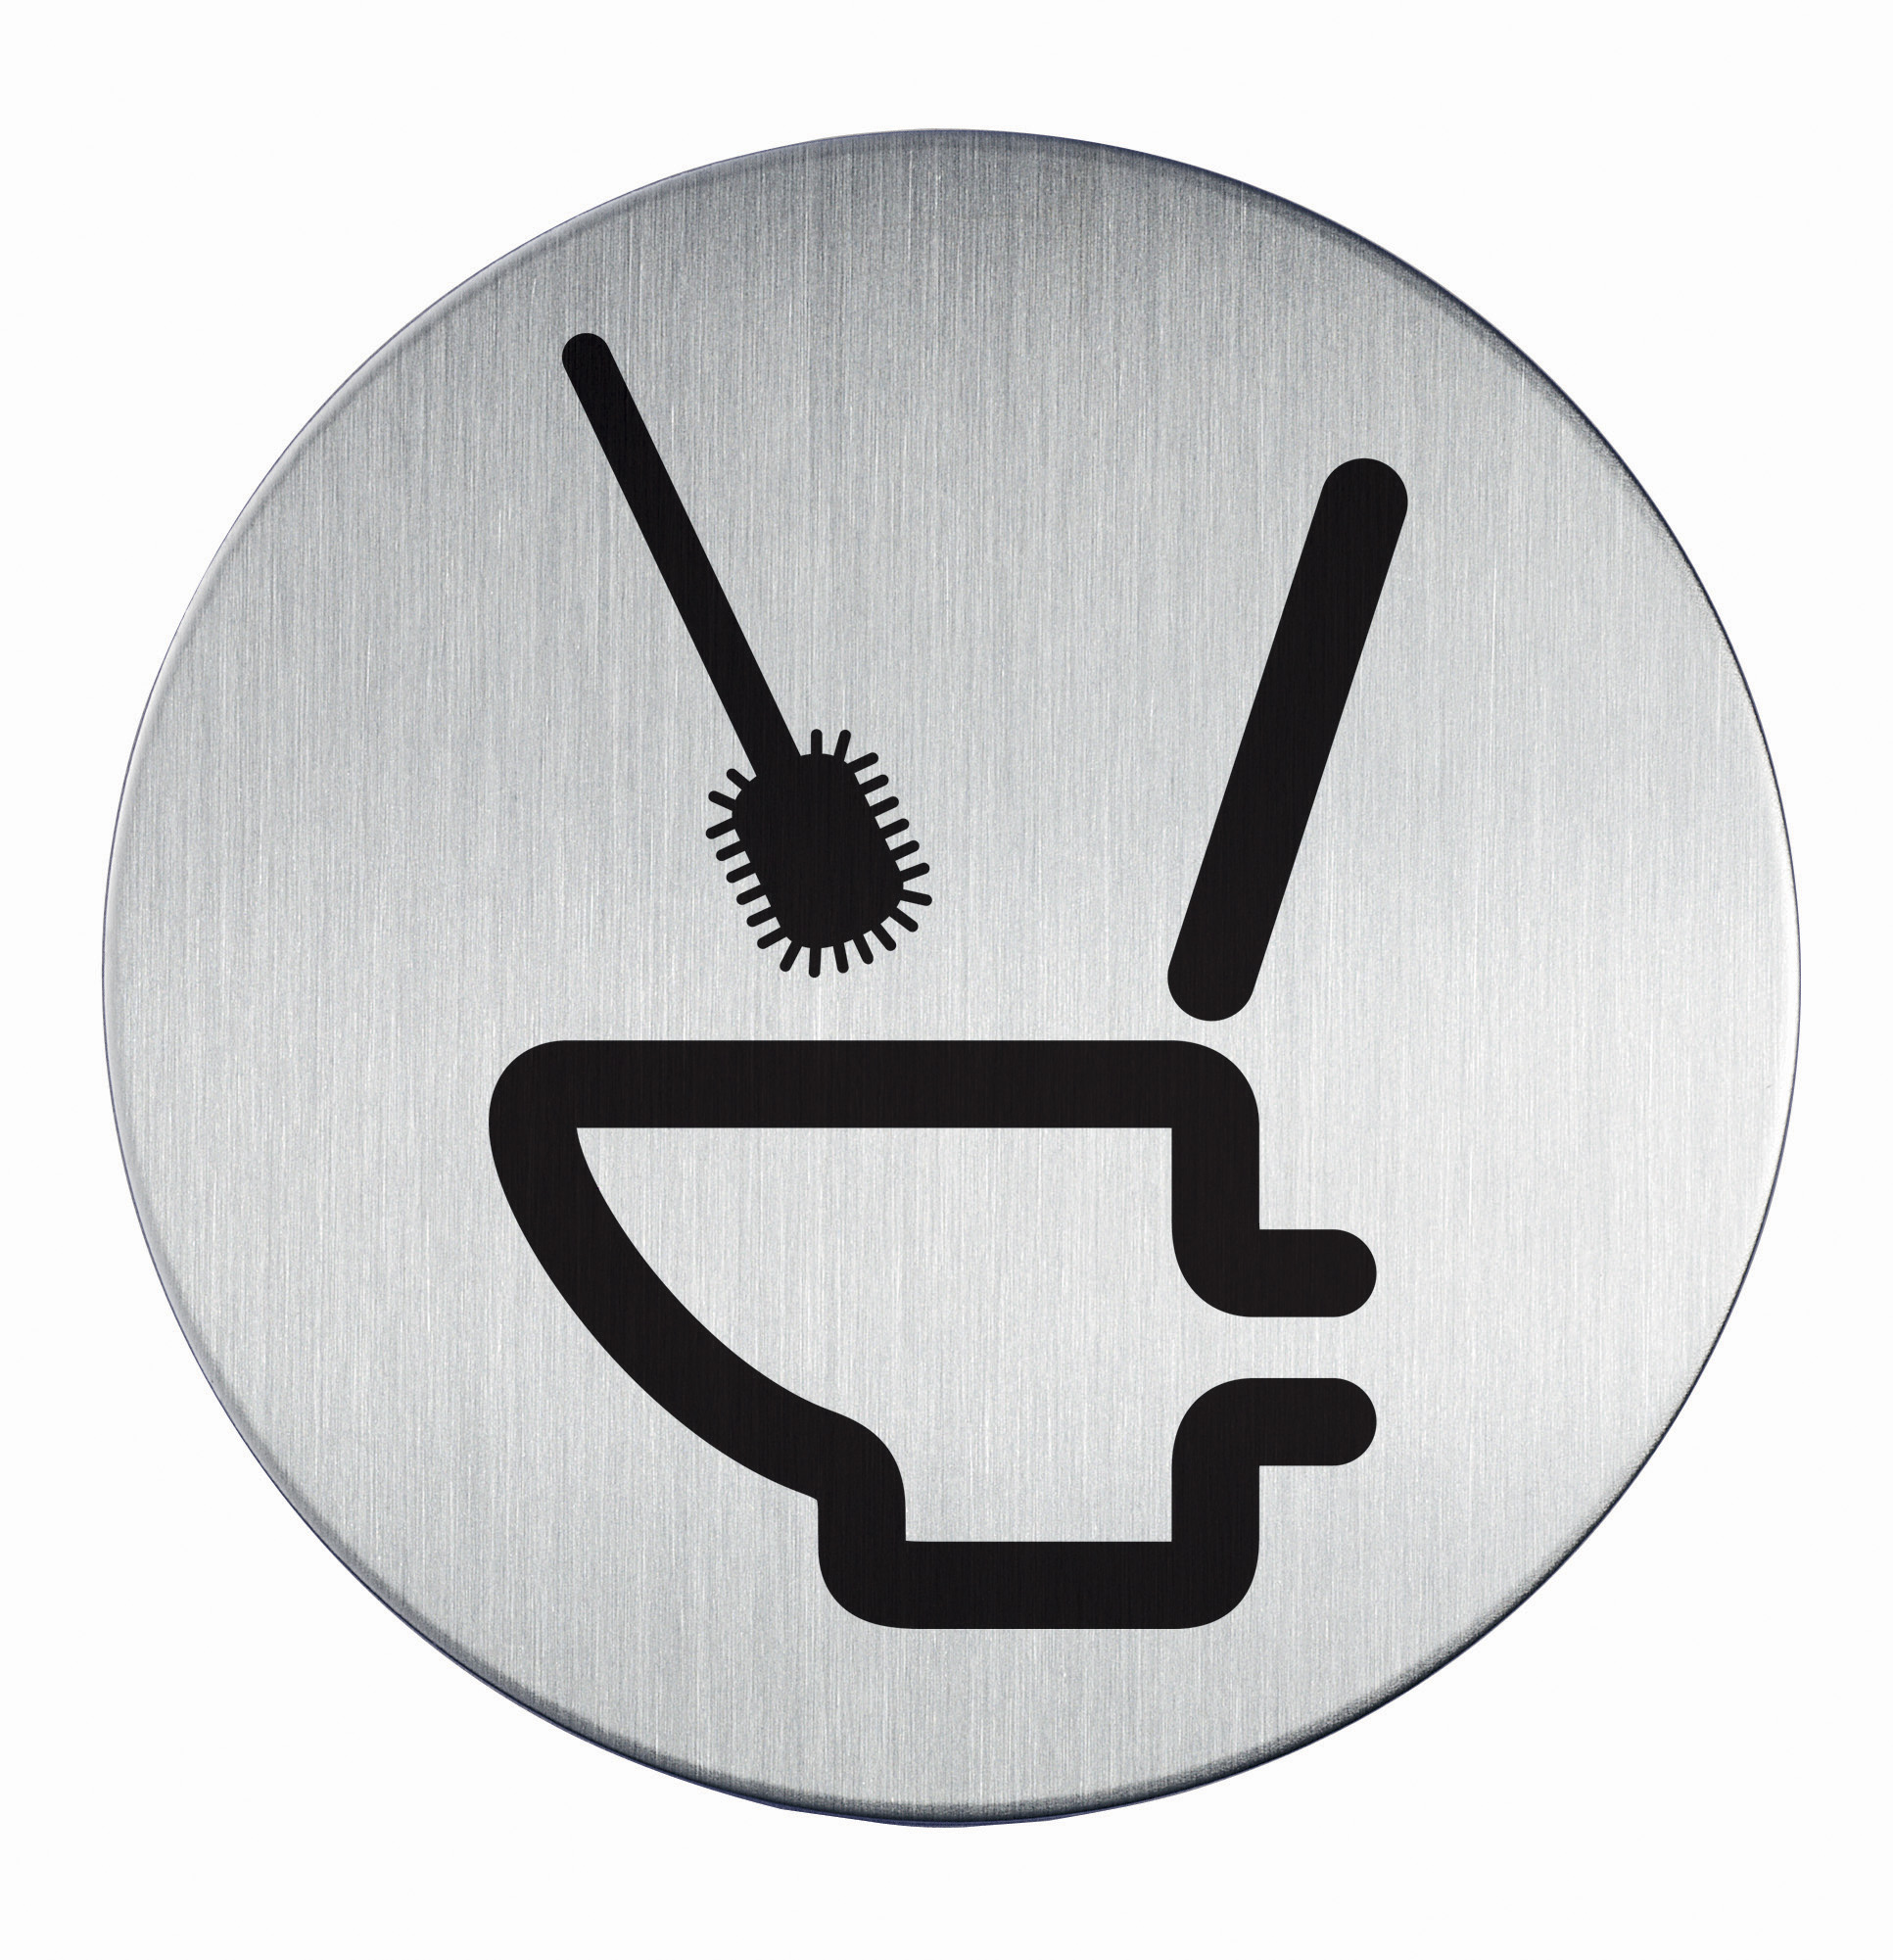 RVS Pictogram Ø 83mm gebruik toiletborstel